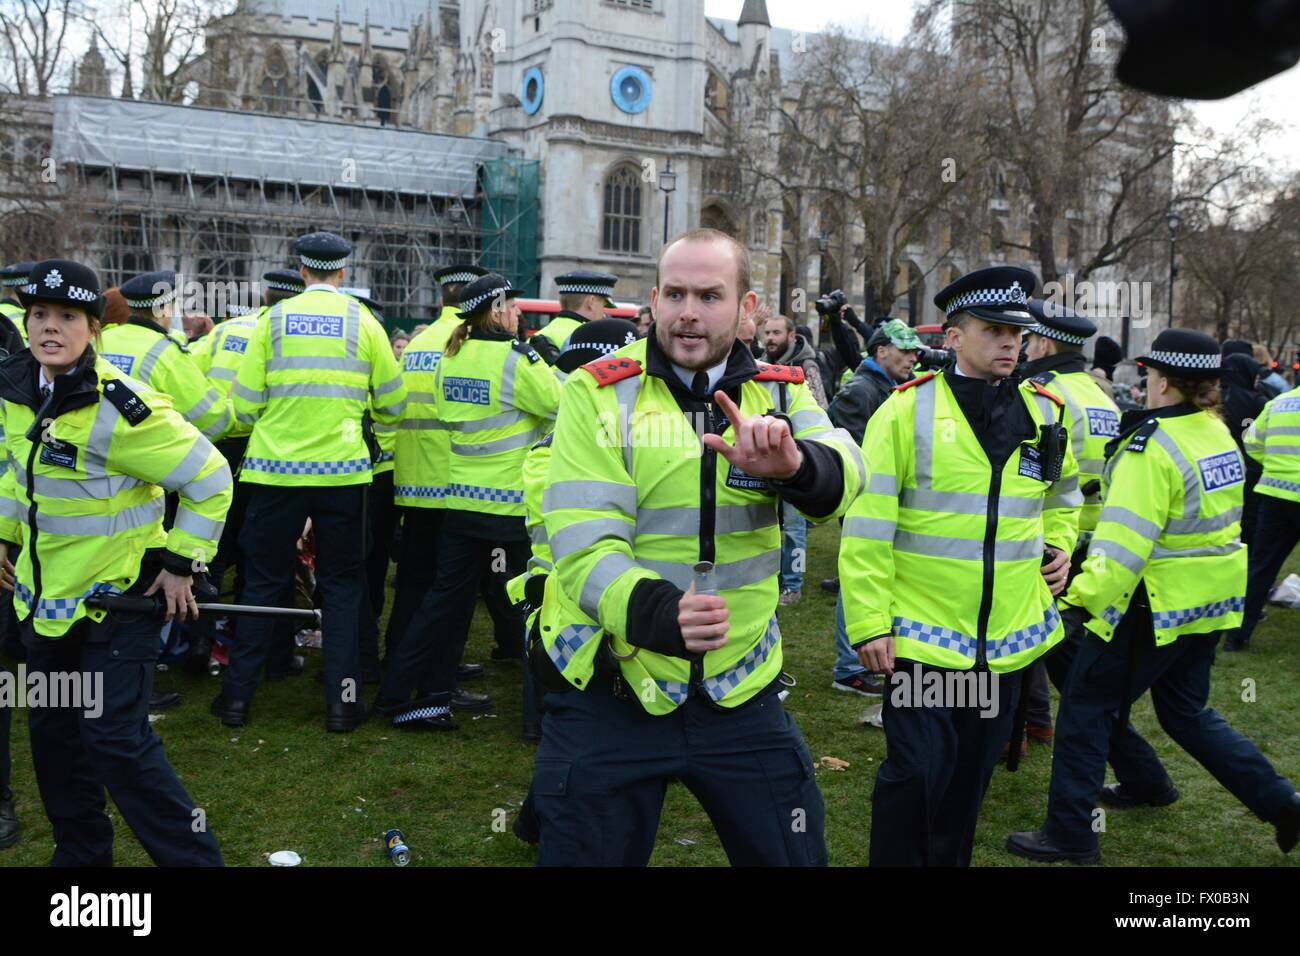 London, UK. 9th April 2016. Police officer prepares to deploy CS spray.Police clash with protesters in Parliament - Stock Image